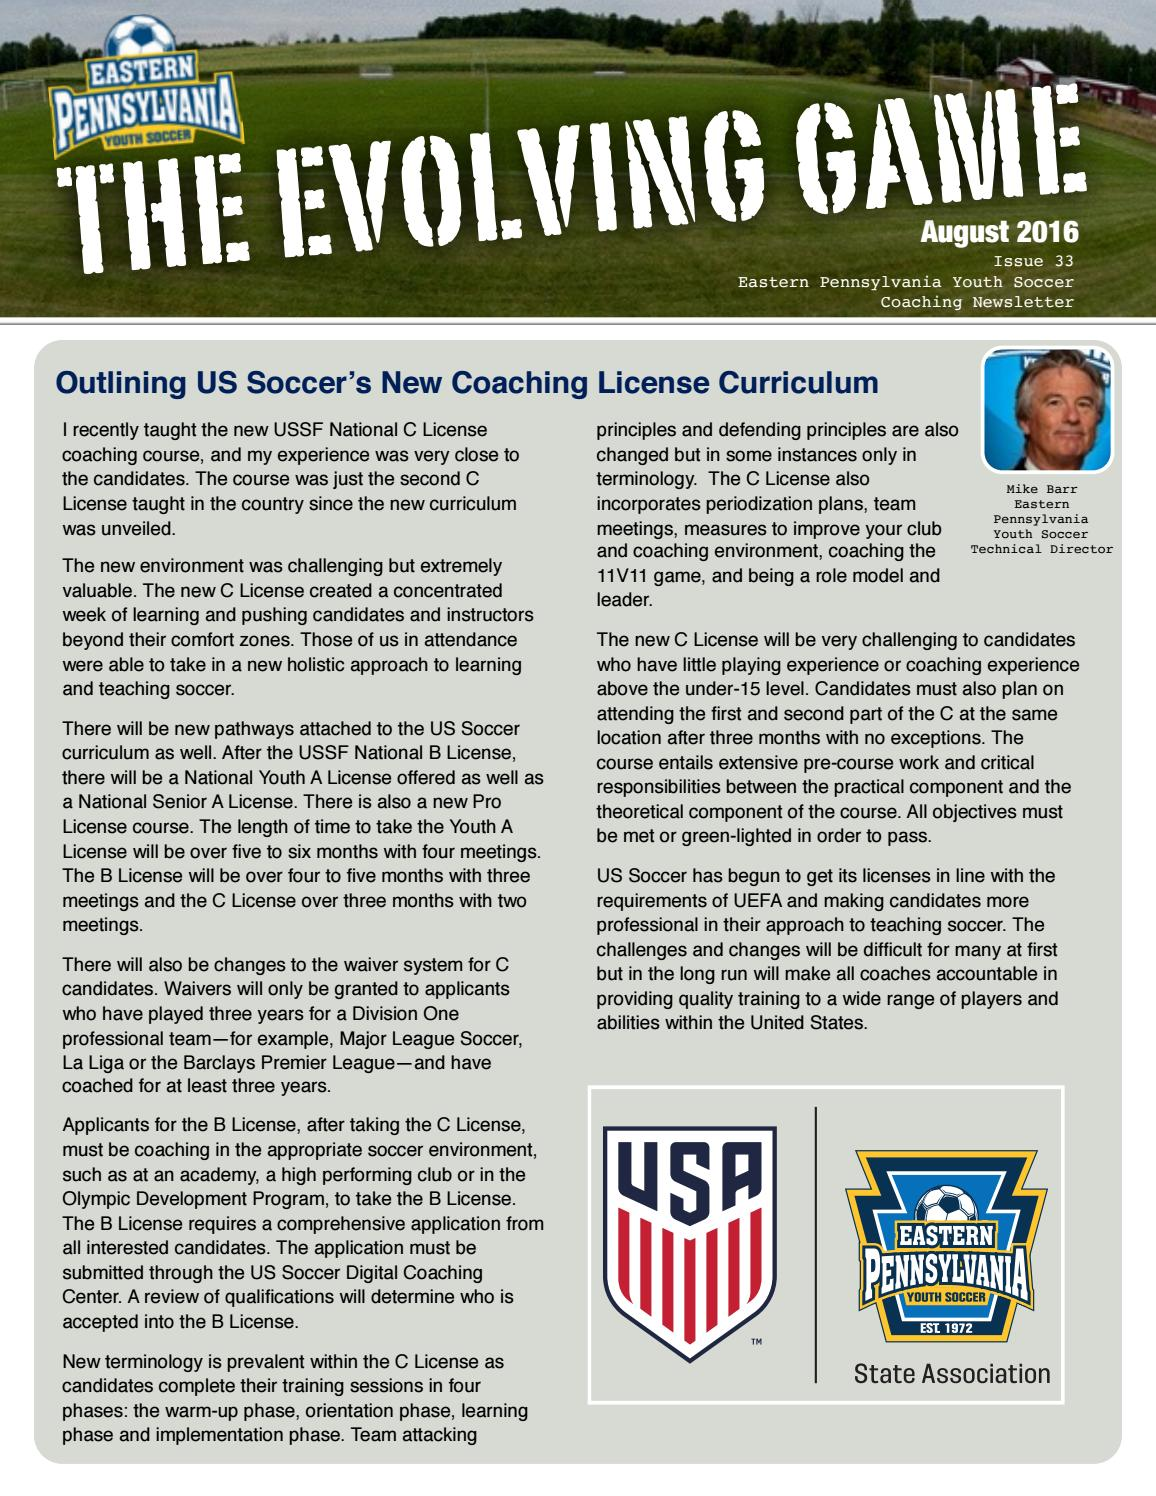 The Evolving Game August 2016 By Eastern Pennsylvania Youth Soccer